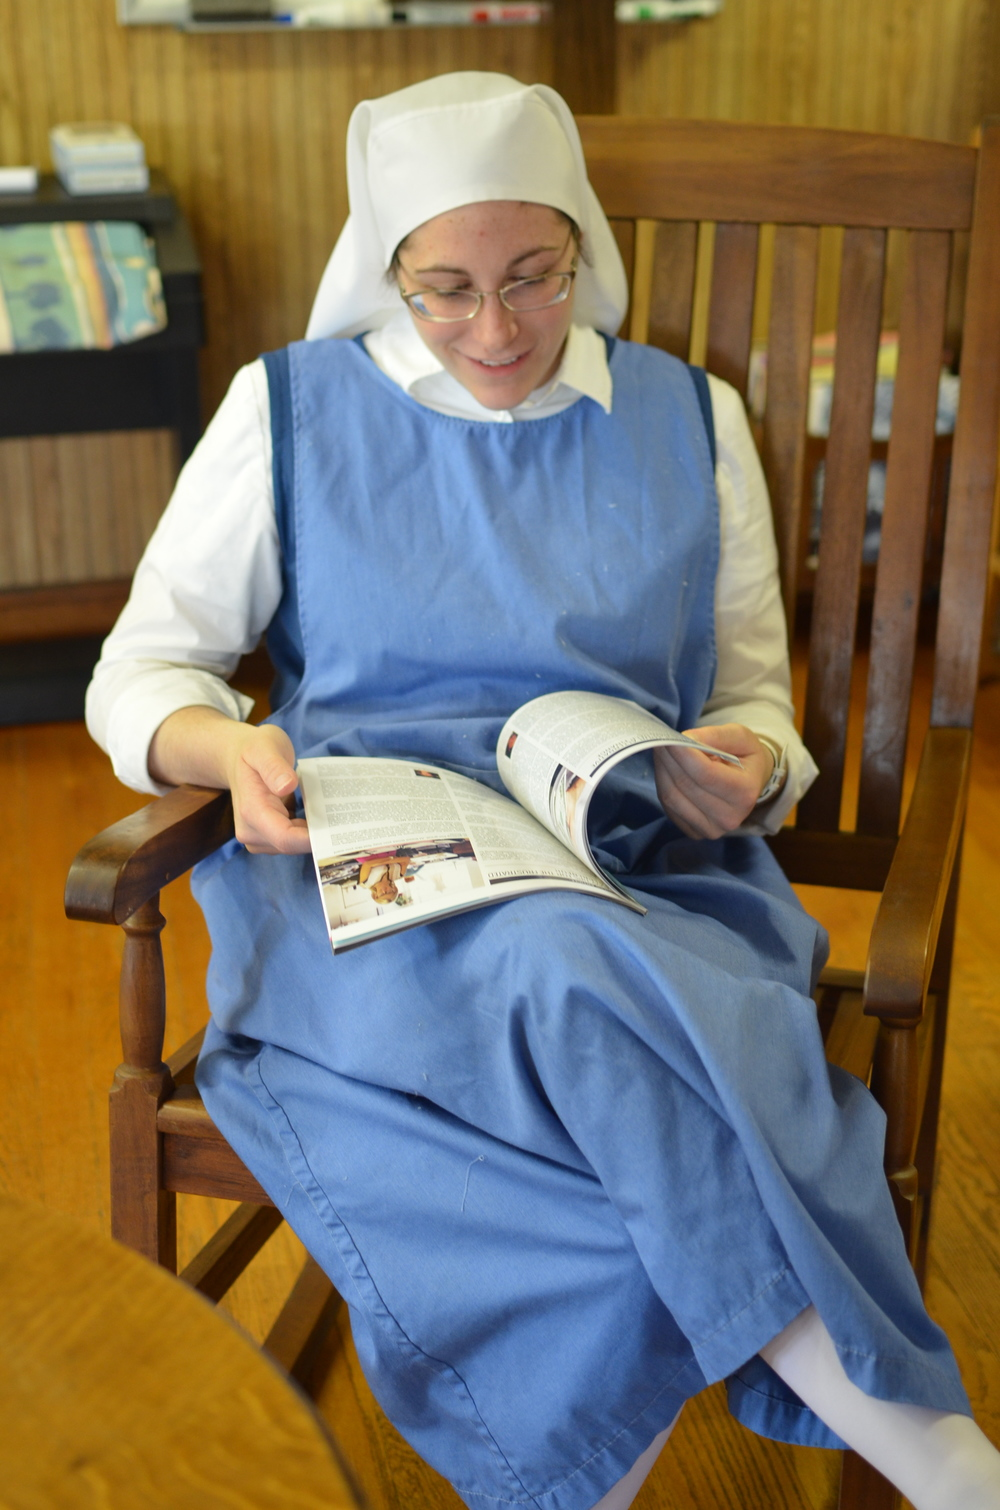 Sr. Danielle reads the latest issue of HANDMADE, the publication of the company from which we purchase most of our soap supplies.